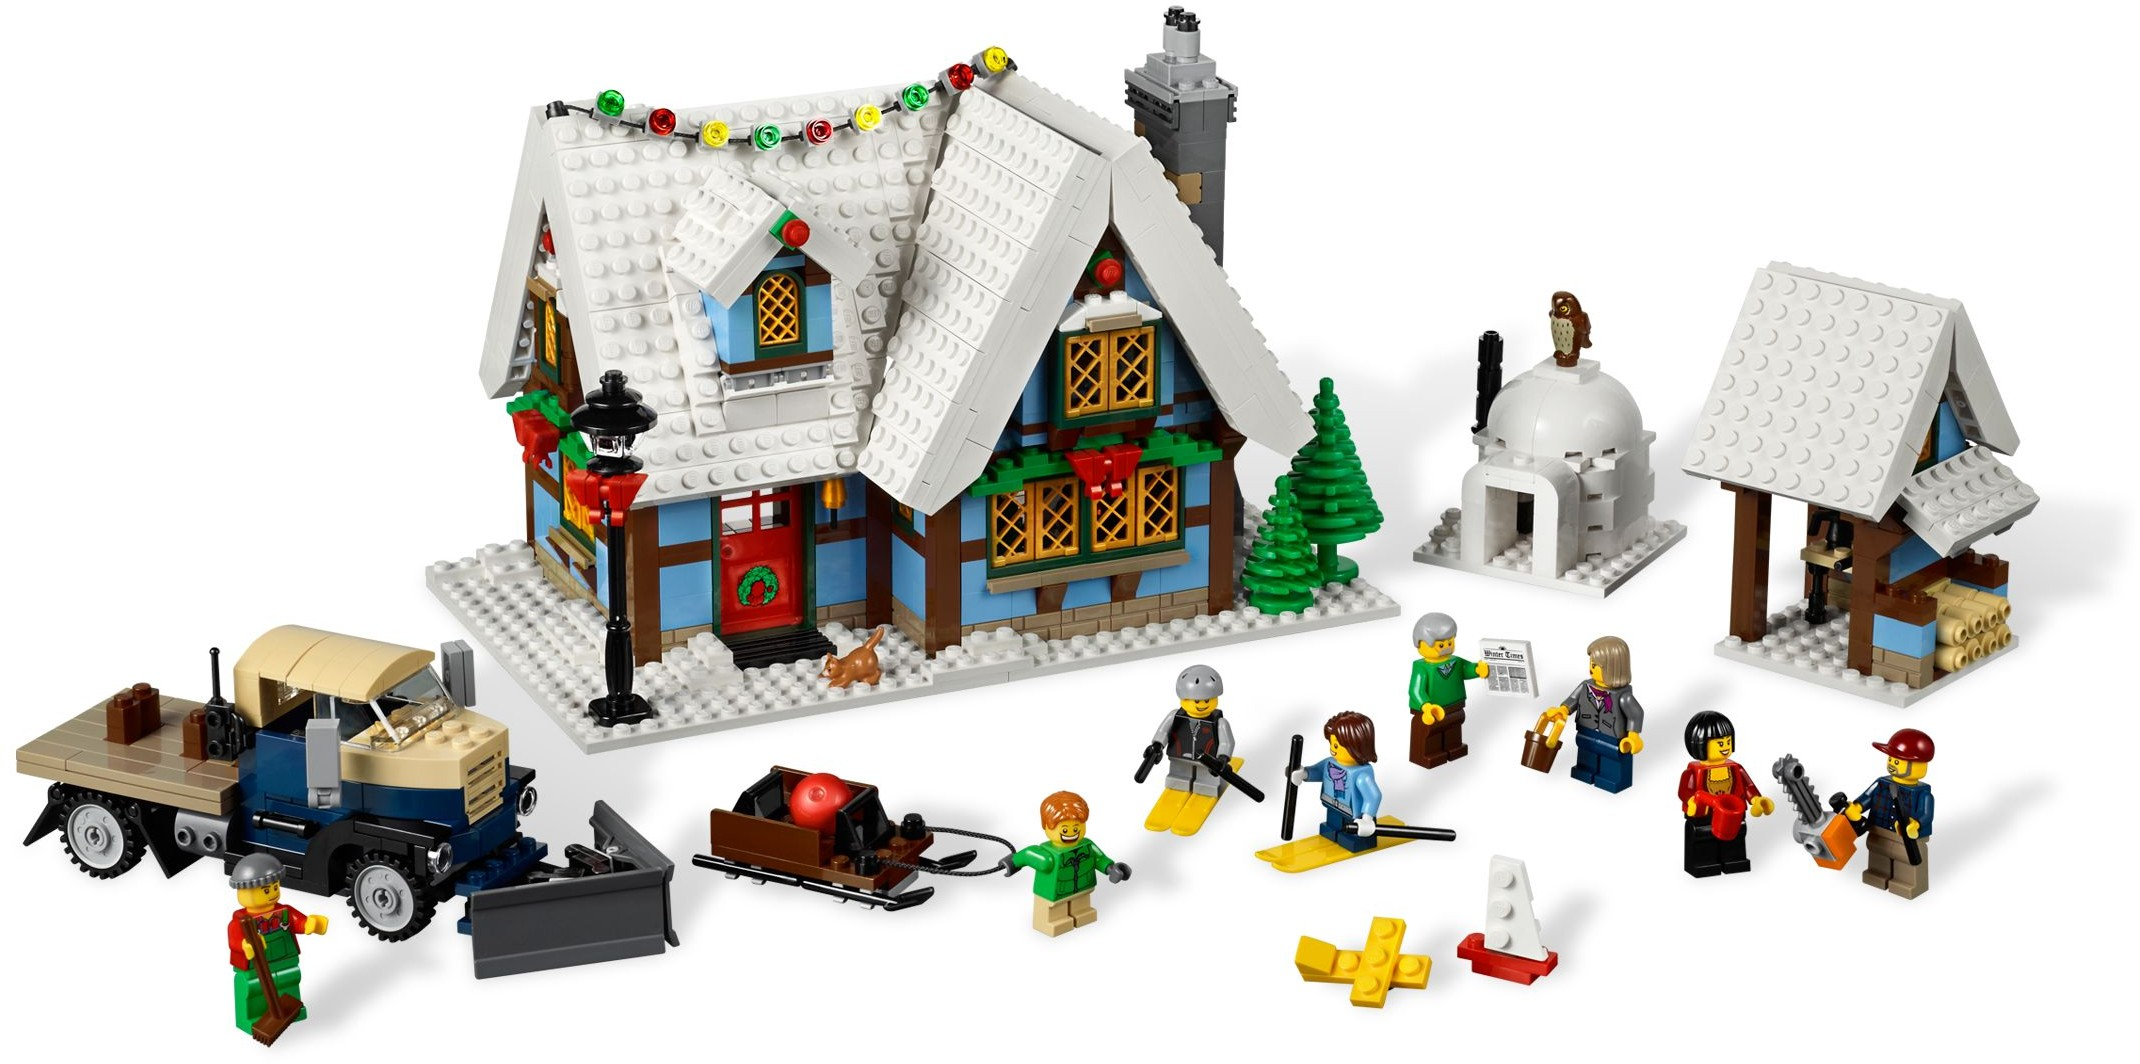 Creator Expert | Winter Village | Brickset: LEGO set guide and database